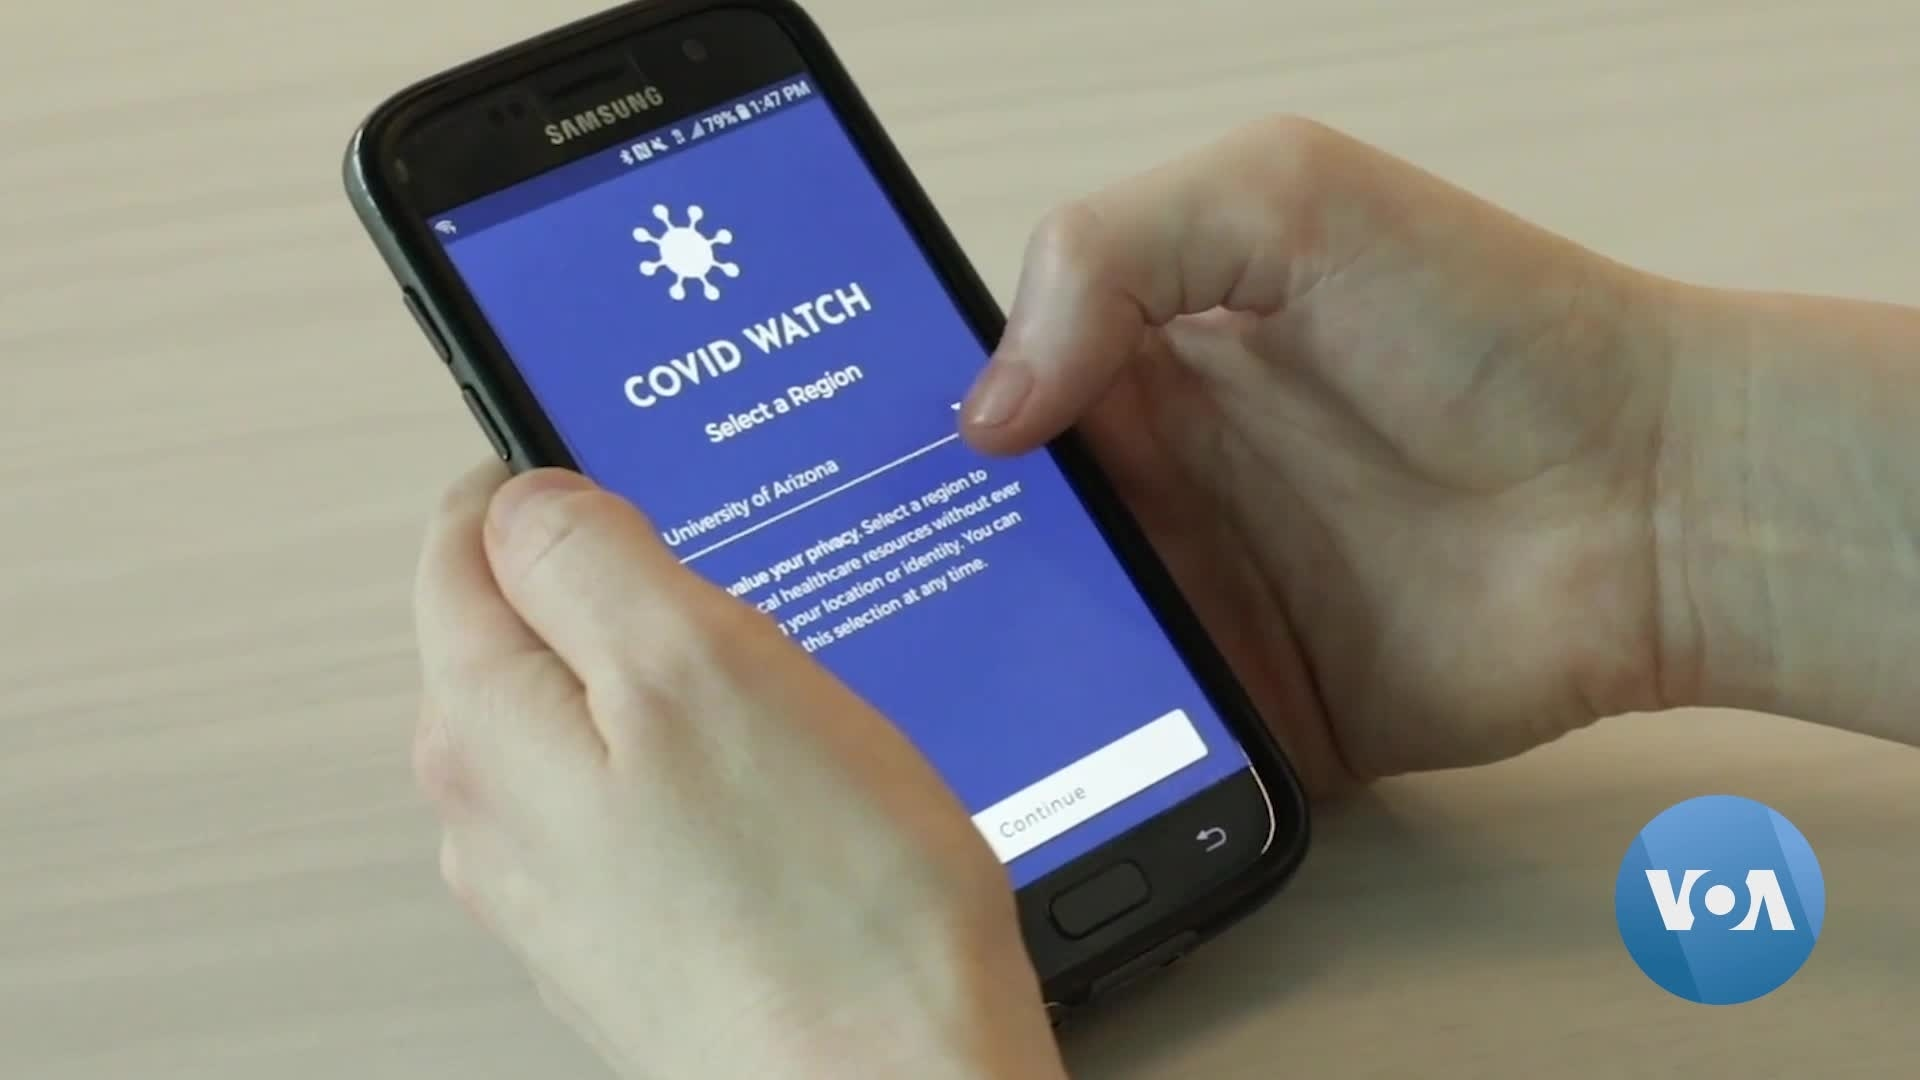 New COVID App Gives Health Officials Dials to Send Tailored Alerts